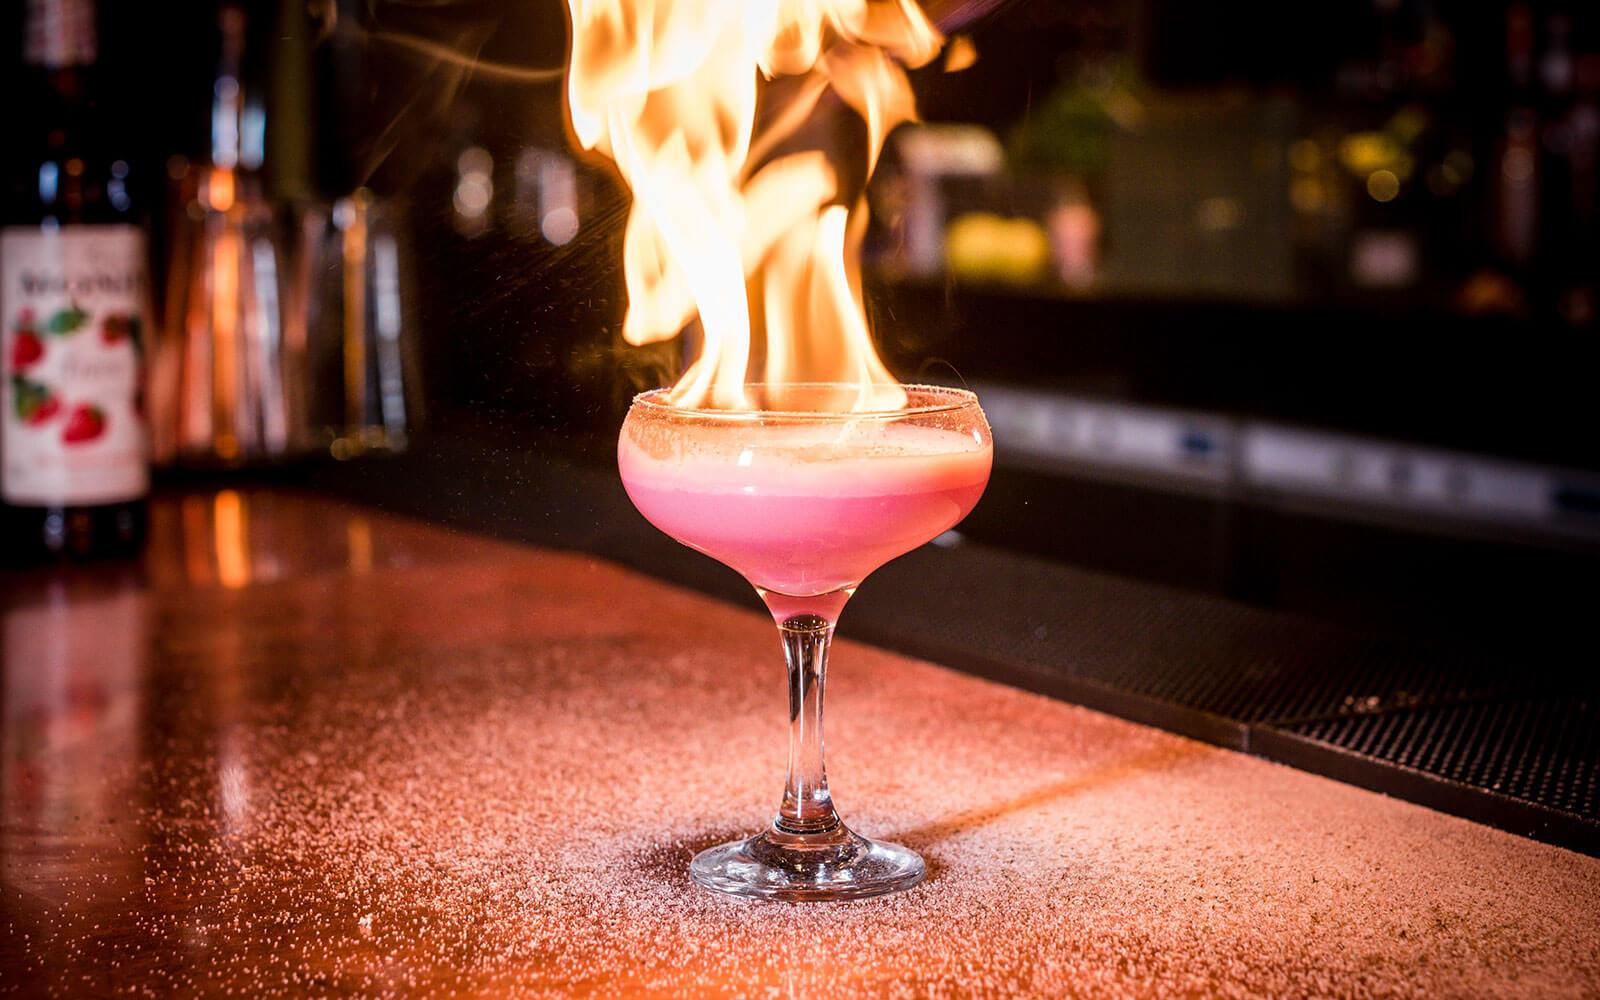 A cocktail with a flaming top at Aluna, one of the best bars in Birmingham